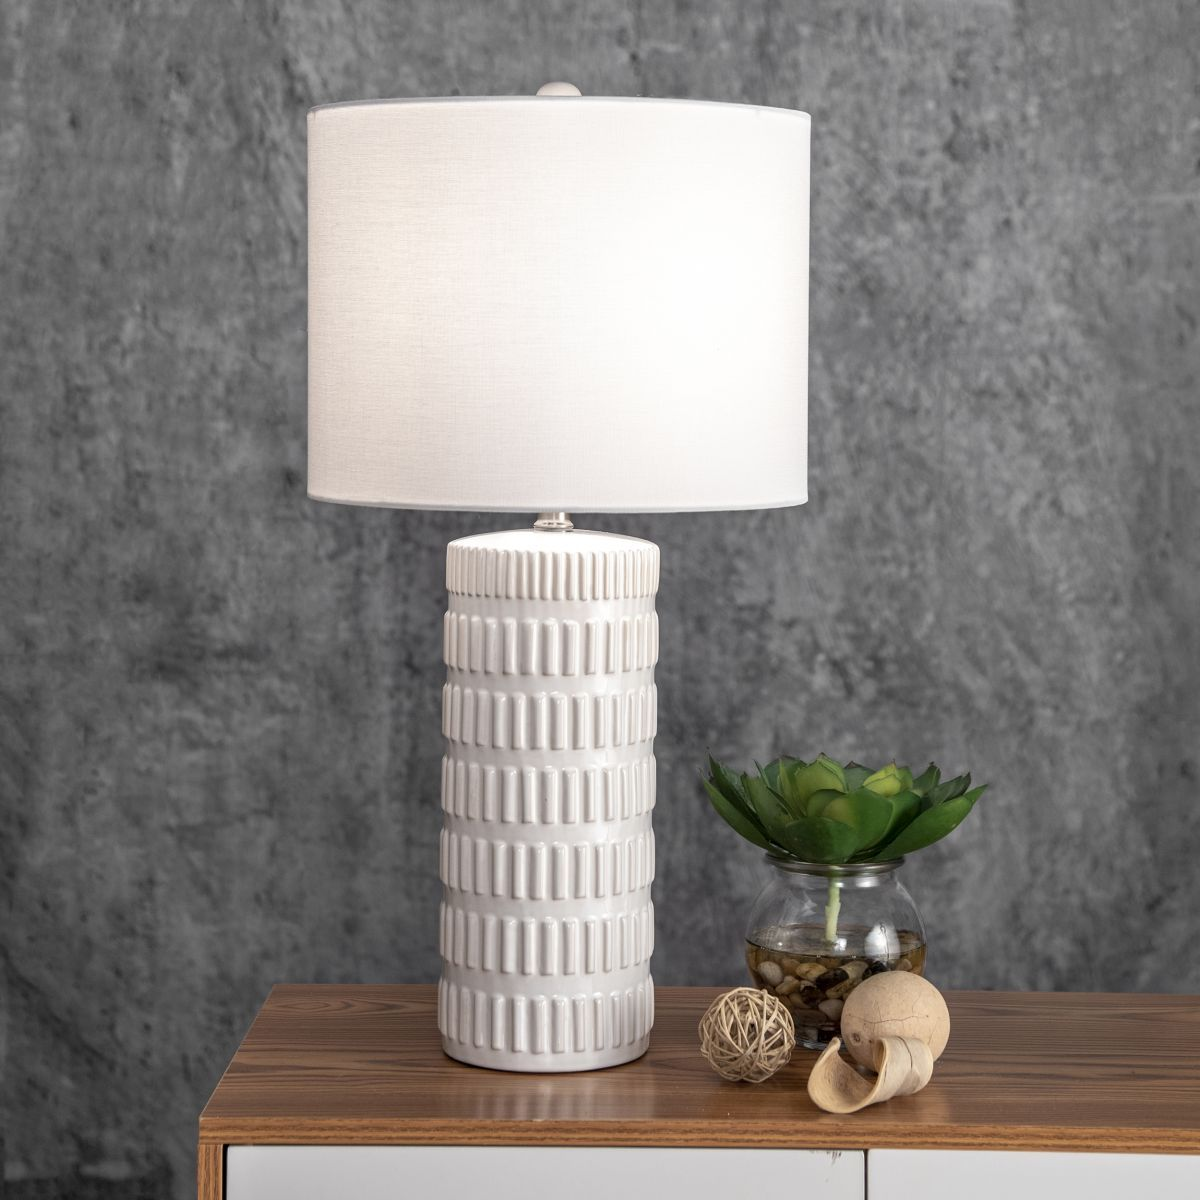 Alva 25 Inch Tangela Ridged Ceramic Table Lamp White Lamp In 2020 Ceramic Table Lamps Table Lamp Ceramic Table